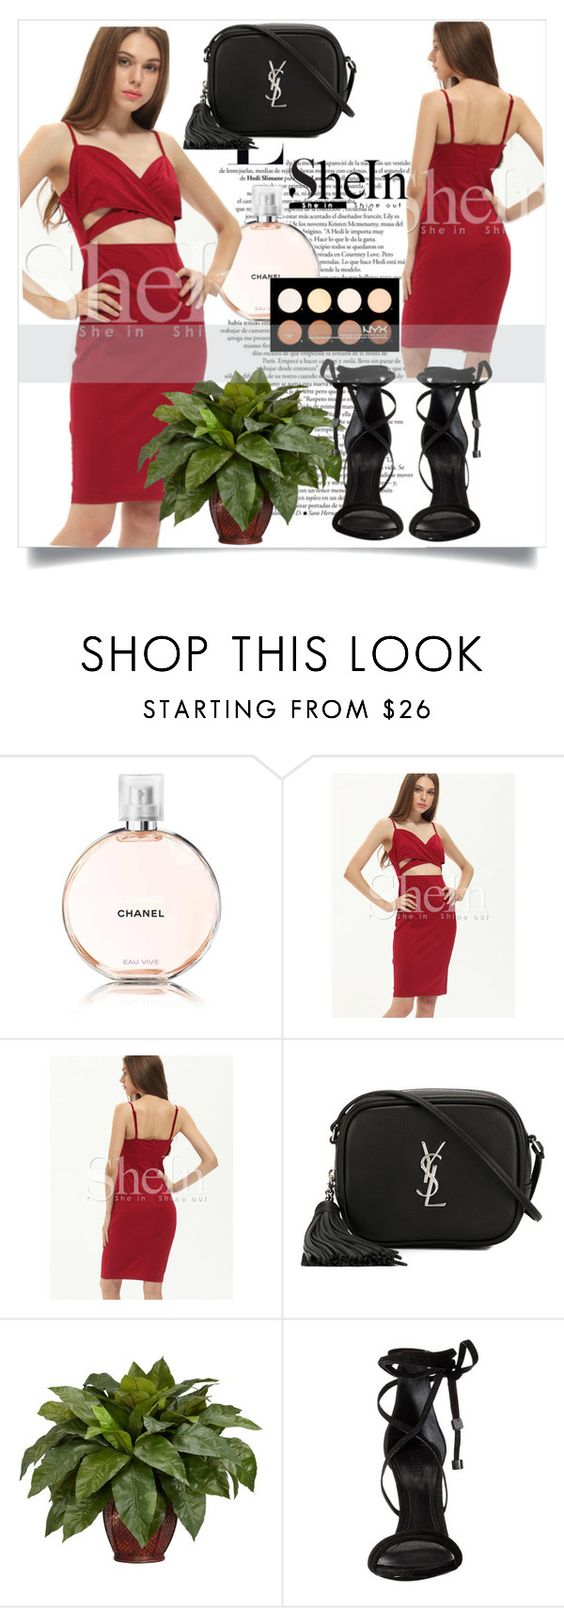 """Sheinside !!"" by annagrigoryan94 ❤ liked on Polyvore featuring Chanel, Yves Saint Laurent, Nearly Natural, Schutz and NYX"